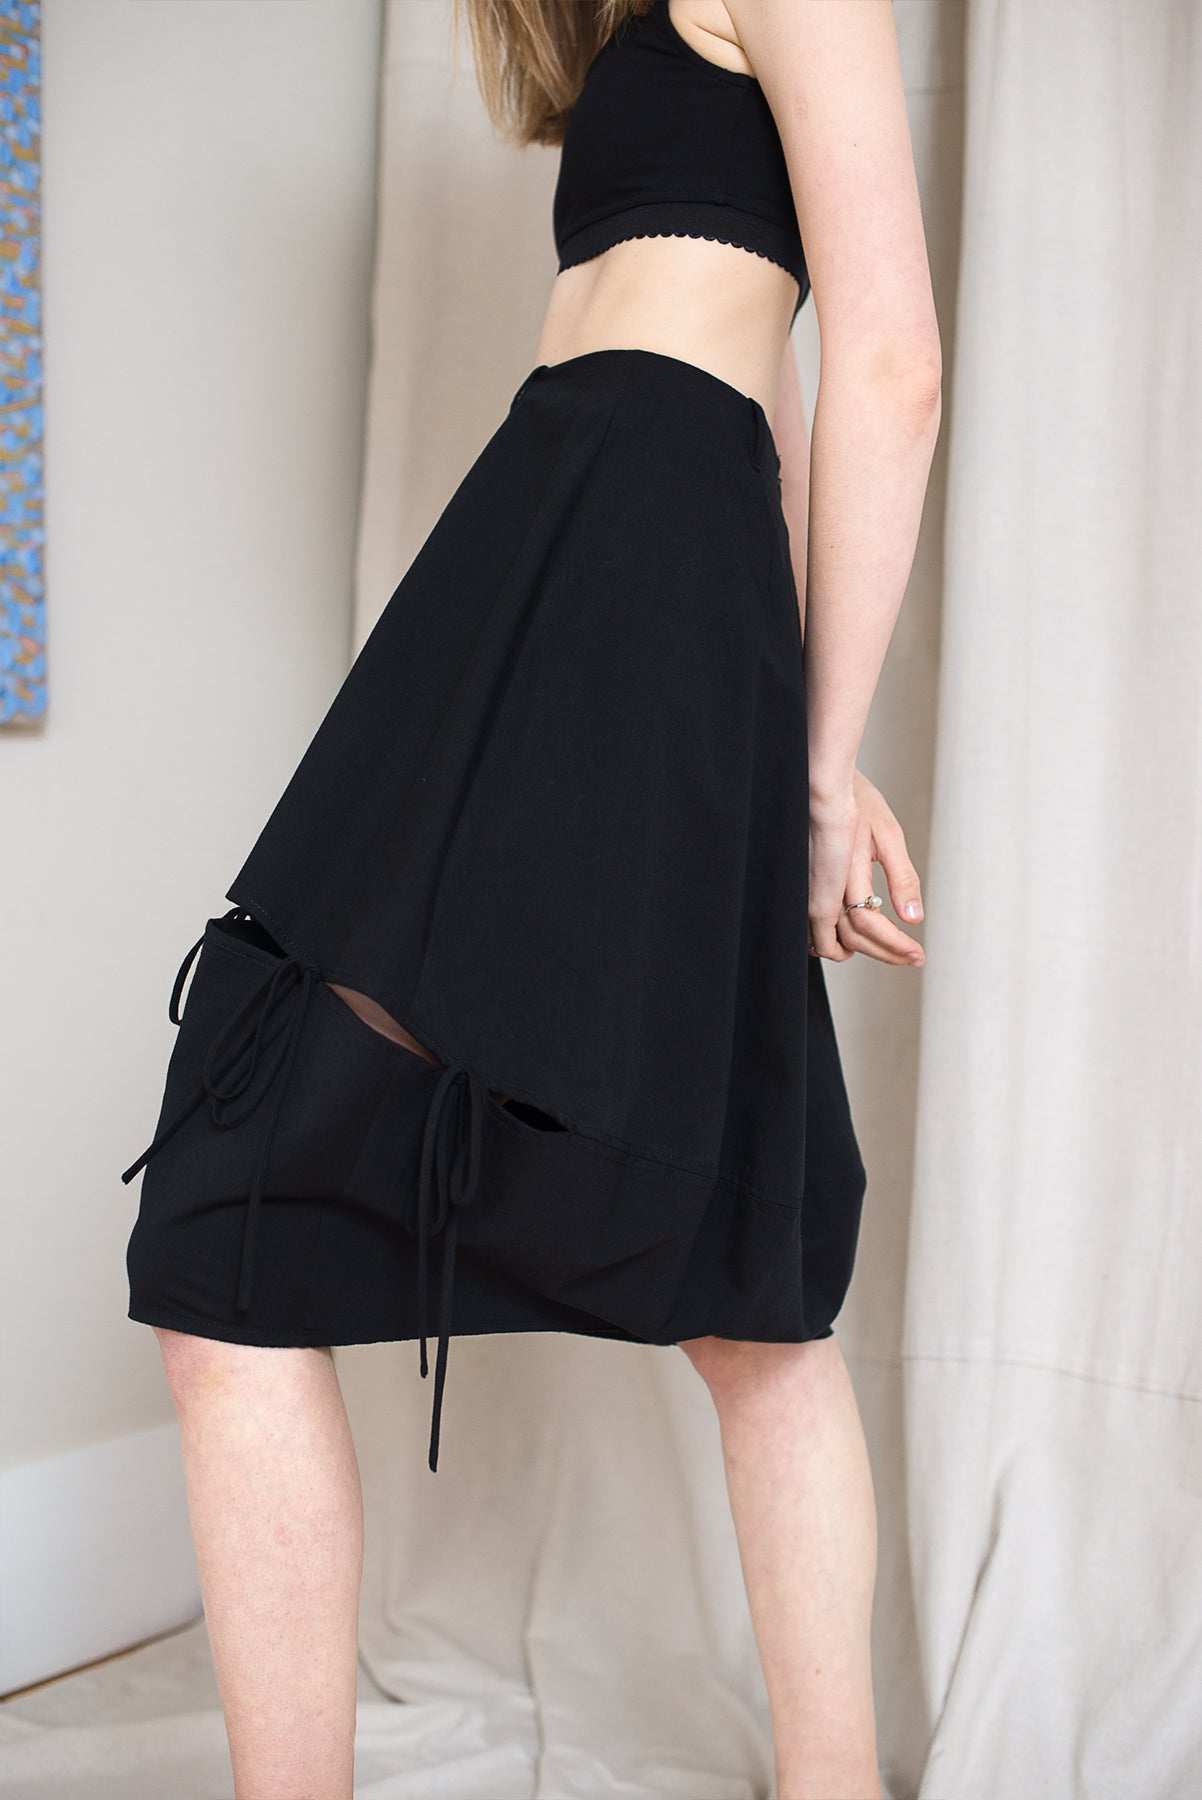 Plankton Skirt - Black